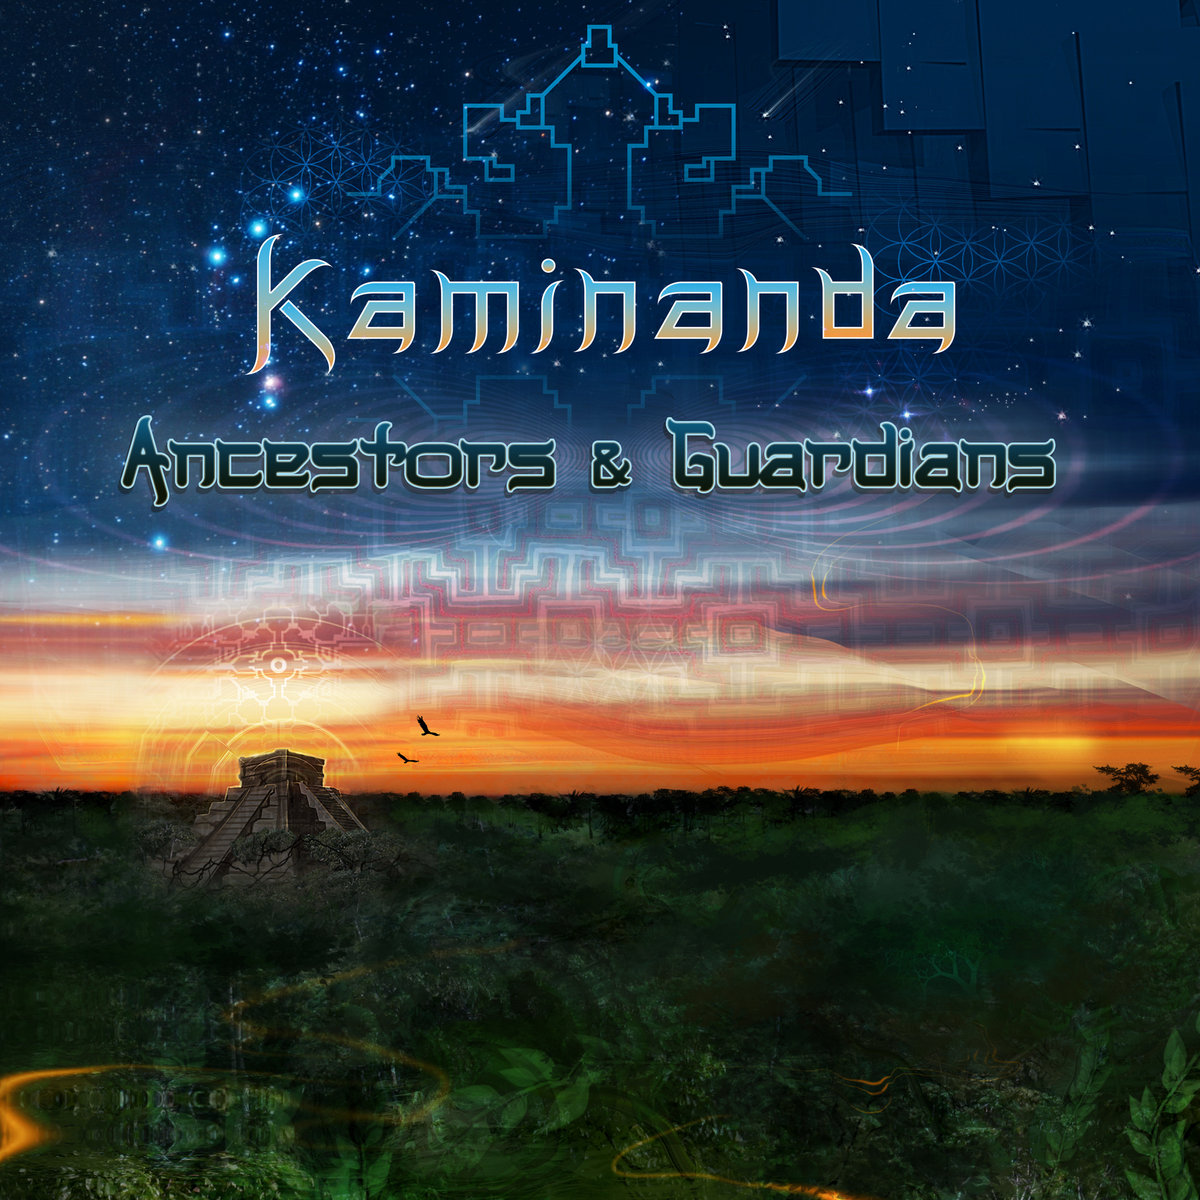 Kaminanda - Optimal Trajecstacy @ 'Ancestors & Guardians' album (california, electronic)